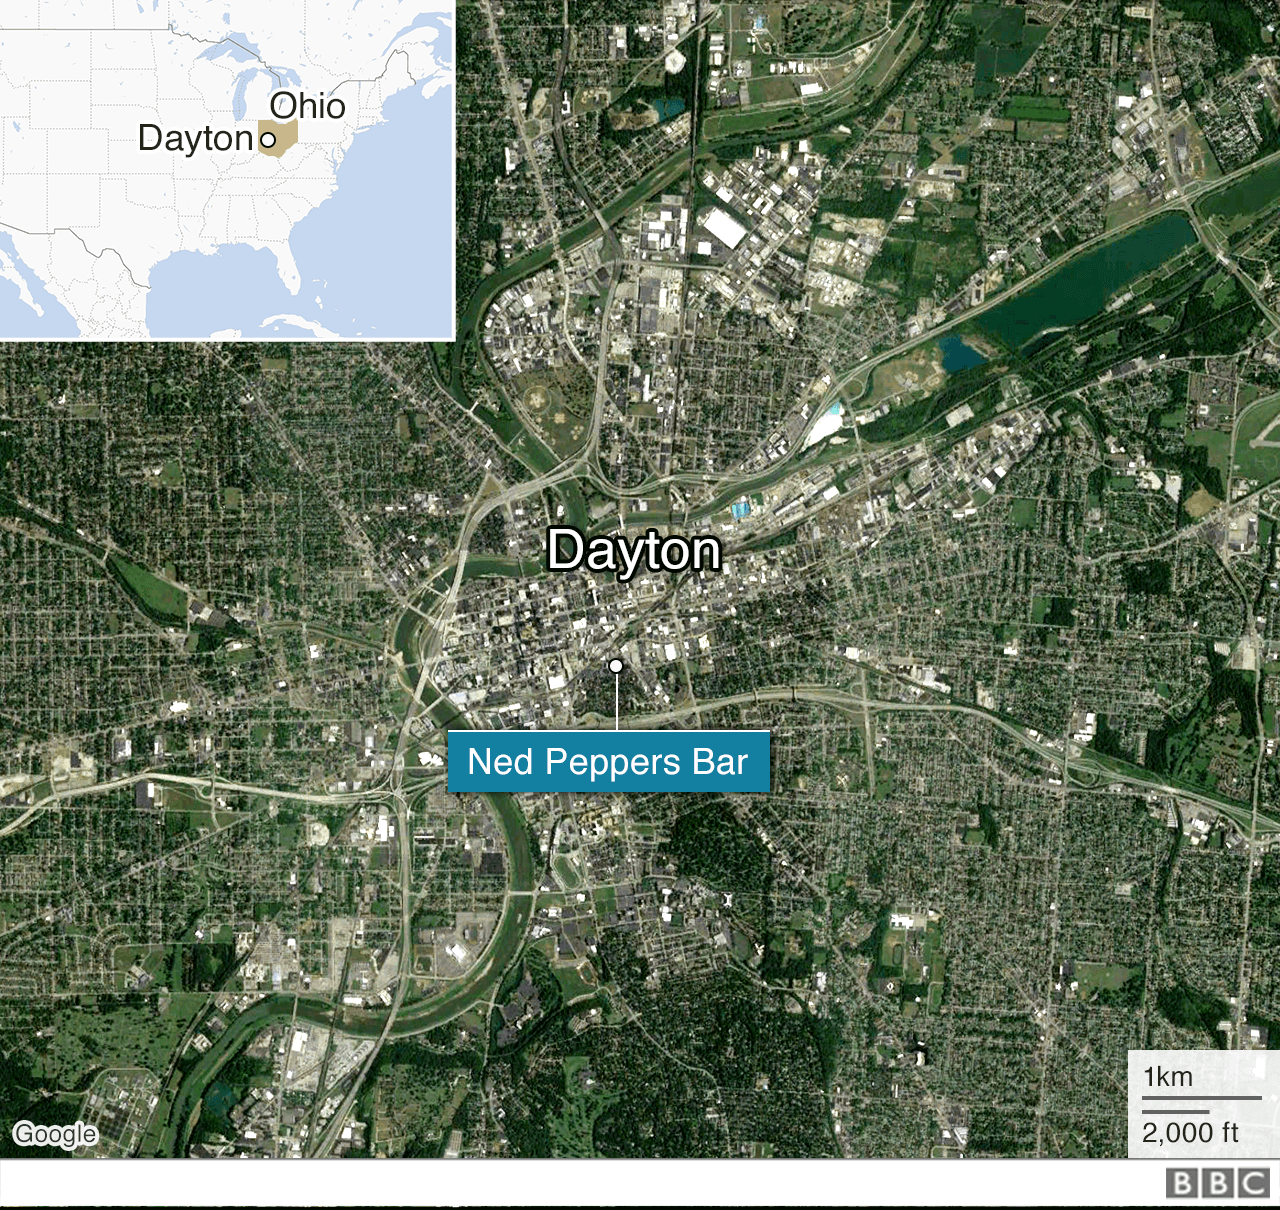 A map shows Ned Peppers Bar in Dayton, Ohio